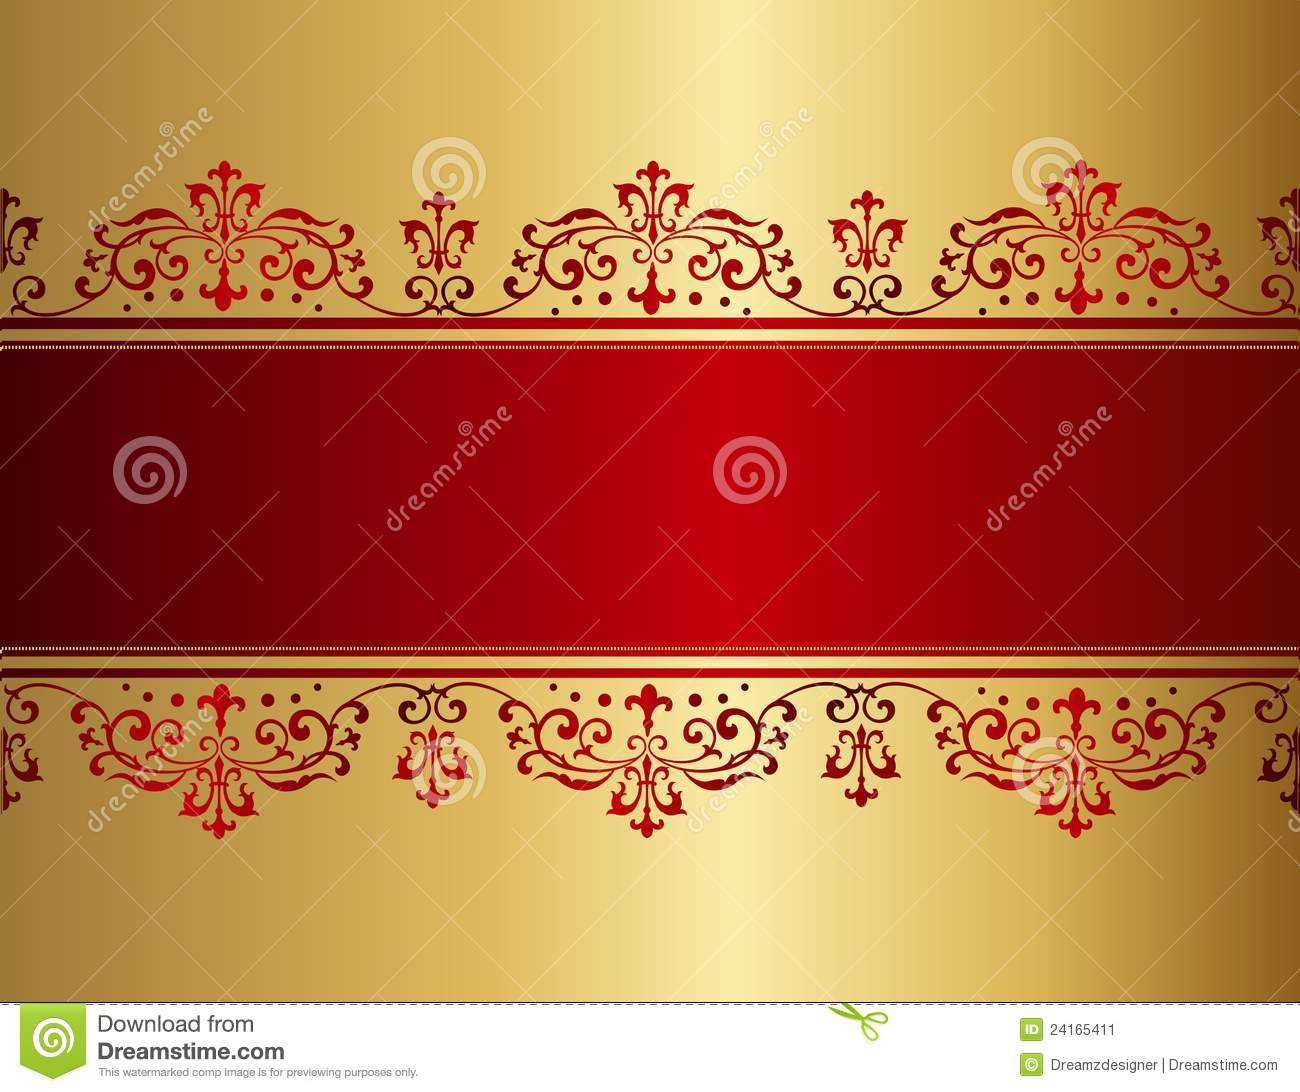 Wedding Invitation Background Stock Image - Image: 24165411